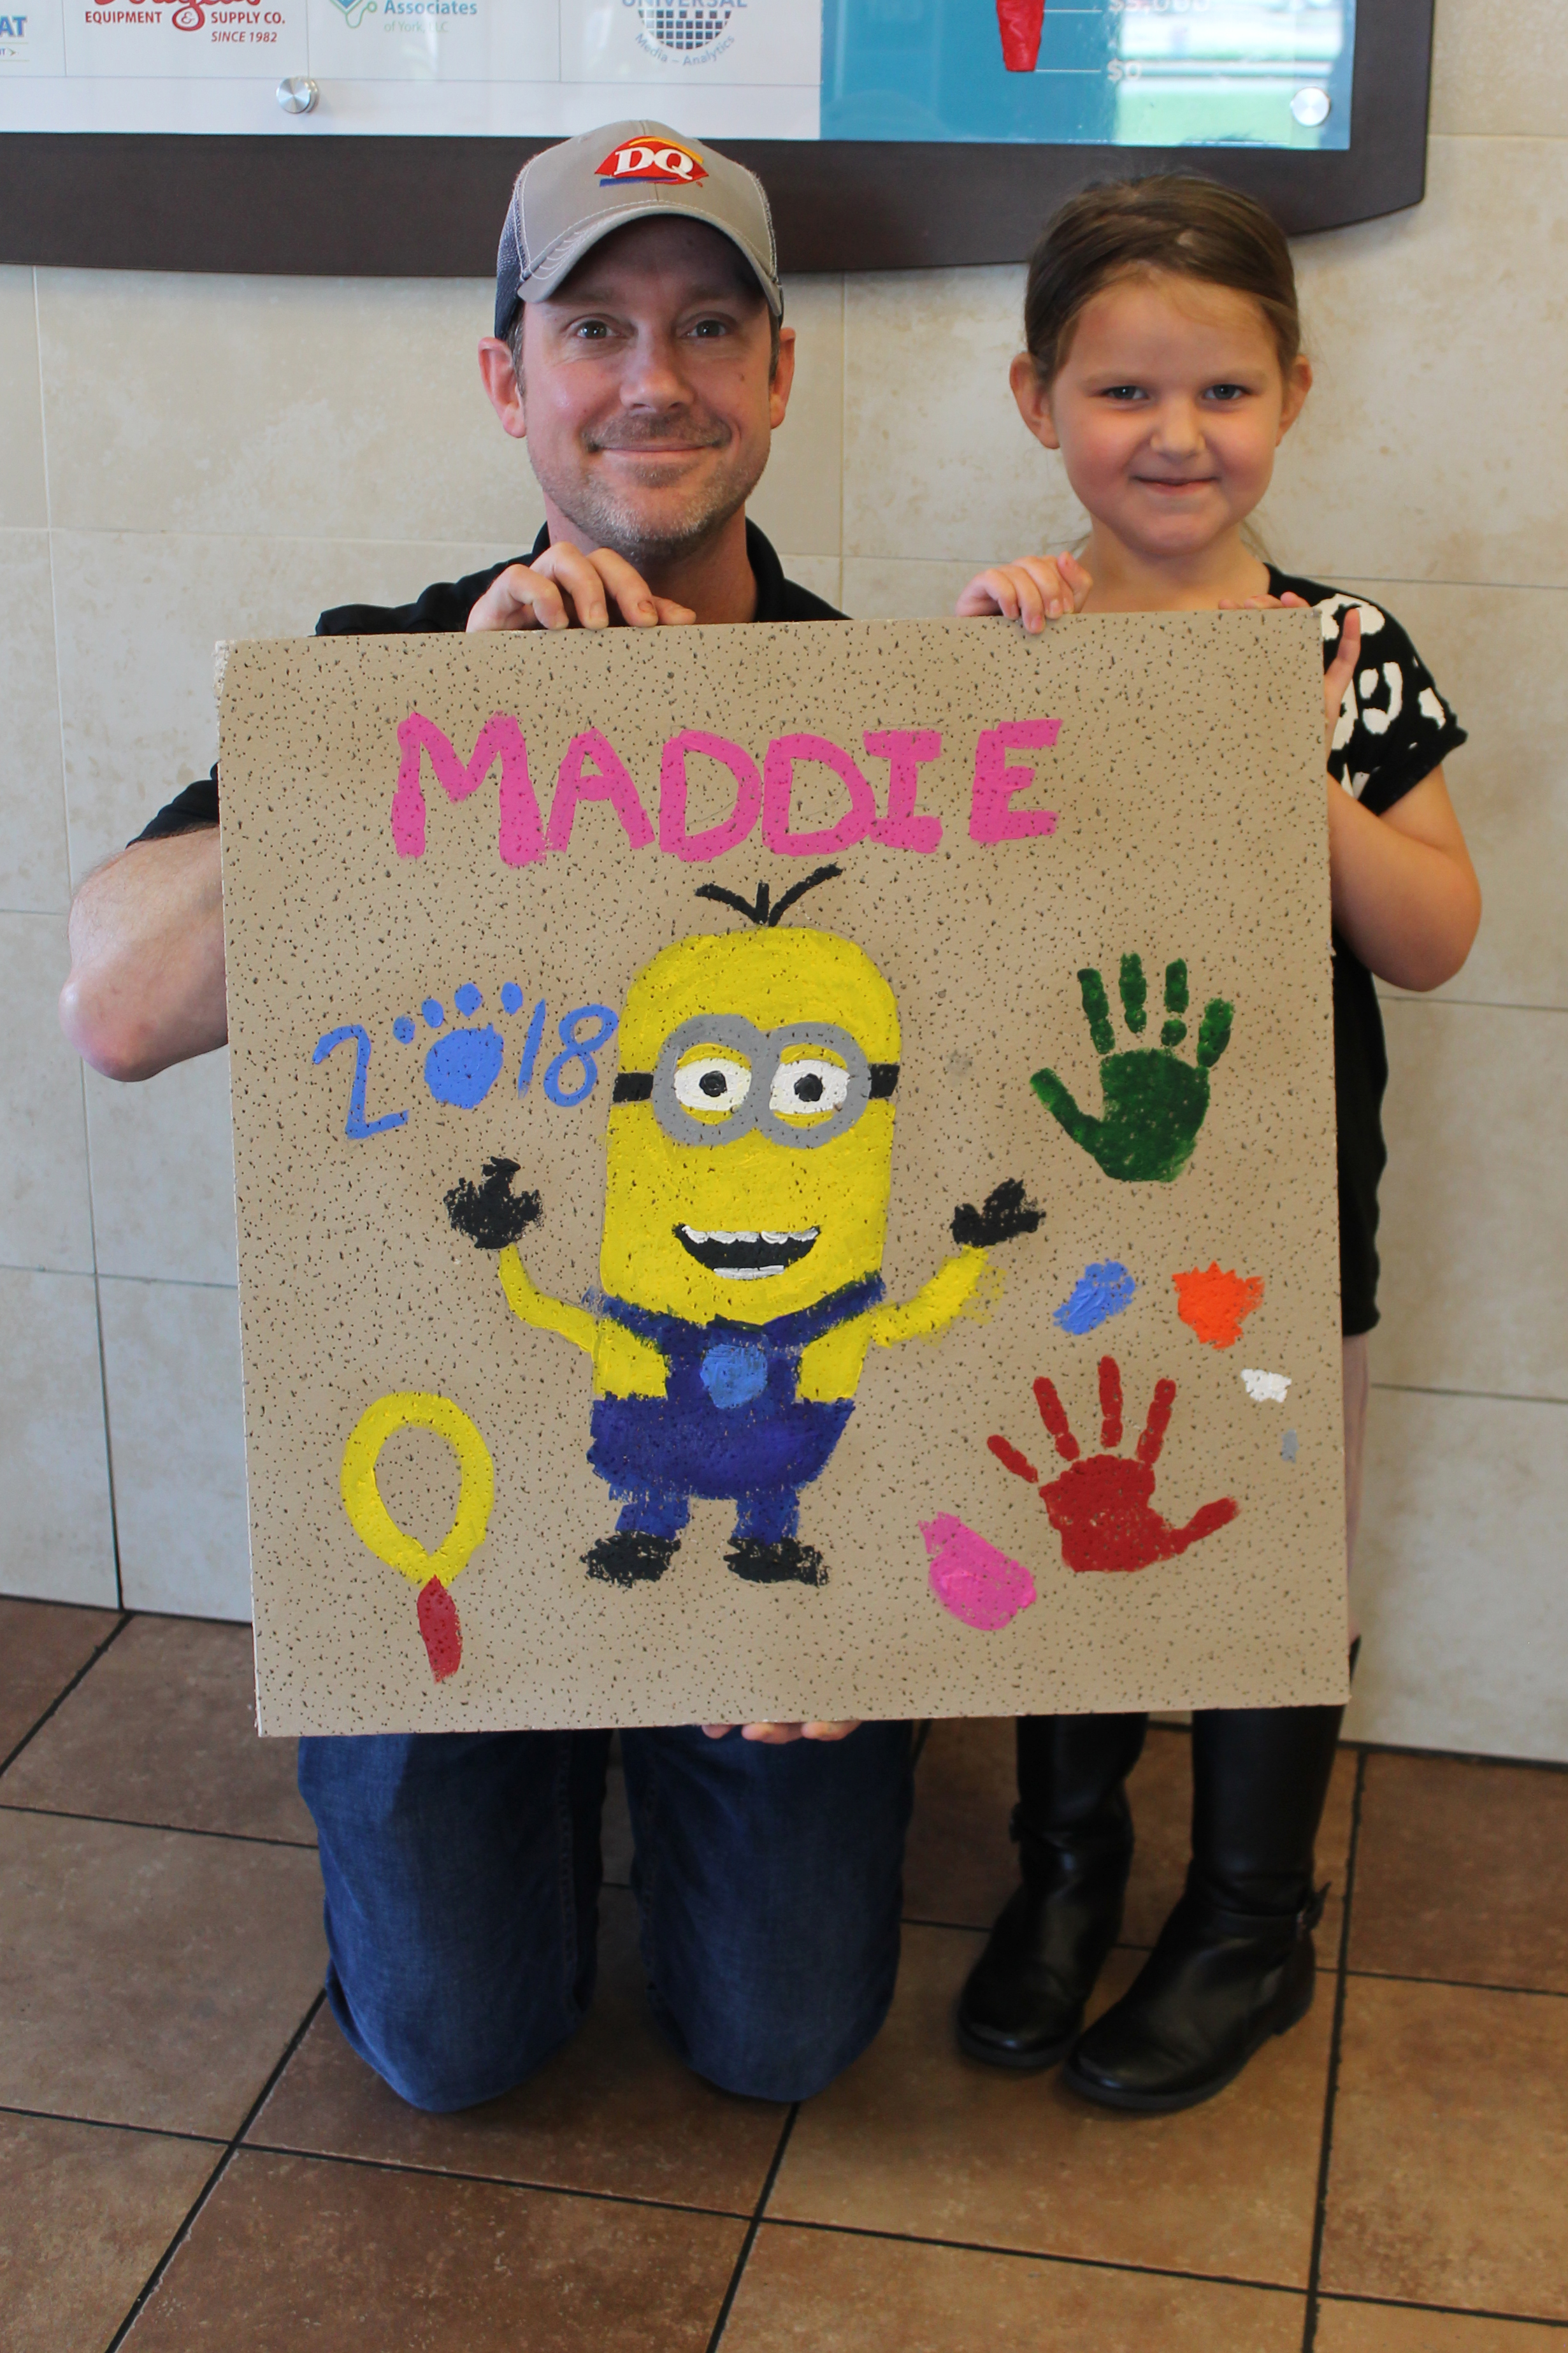 Madeline, Age 3, was saved by Penn State Children's Hospital when she was run over by a car. CMN was there for every moment caring for her, her family, equipment and funding research.